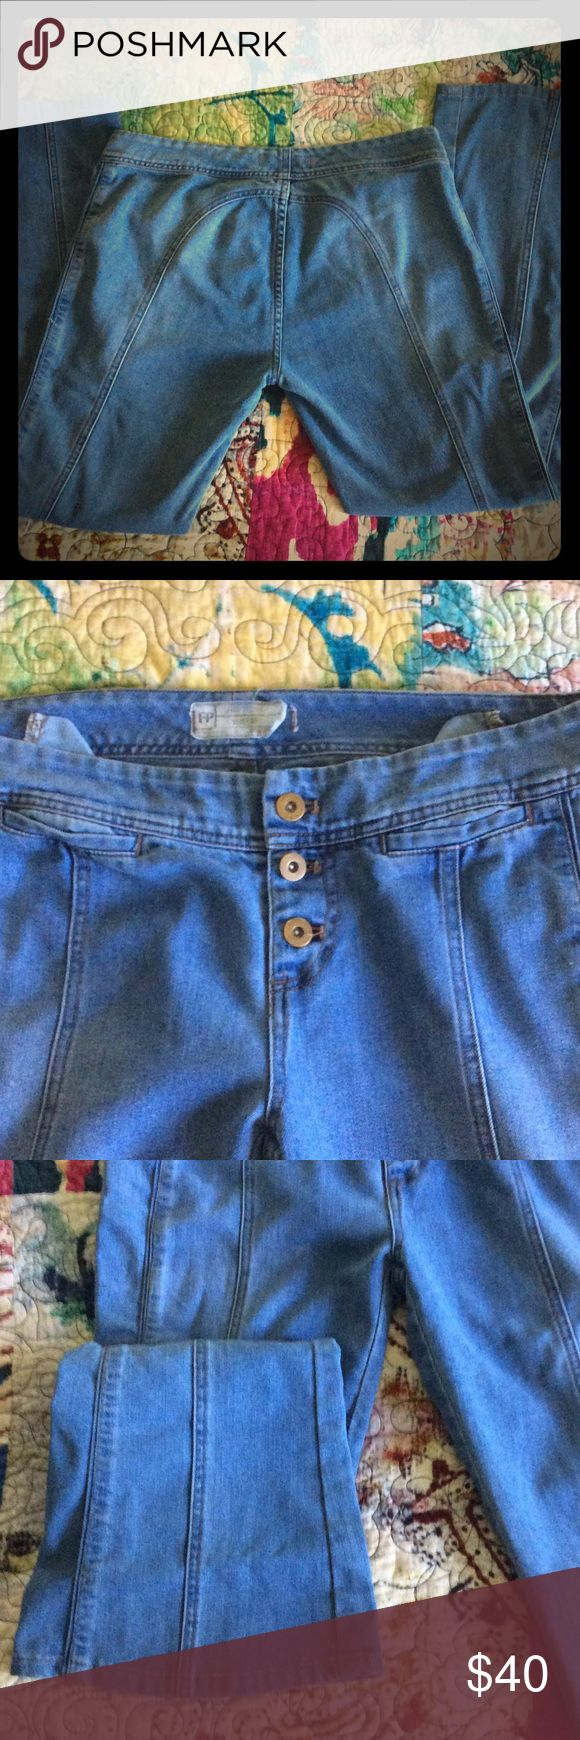 "Free People Willow Seam Flare A VERY sad reposh 😭 they are just way too short on me (and snug!) definitely do not fit like a normal fp jean in length. They are 29, but snug with no stretch, would maybe fit a 28 better? Inner waist button is loose (pictured) and sold that way, an easy fix I was going to do (and can, upon request at purchase) def check measurements first!!Laying flat: inseam: 28"" waist: 17"" hips: 19"" Free People Jeans Flare & Wide Leg"